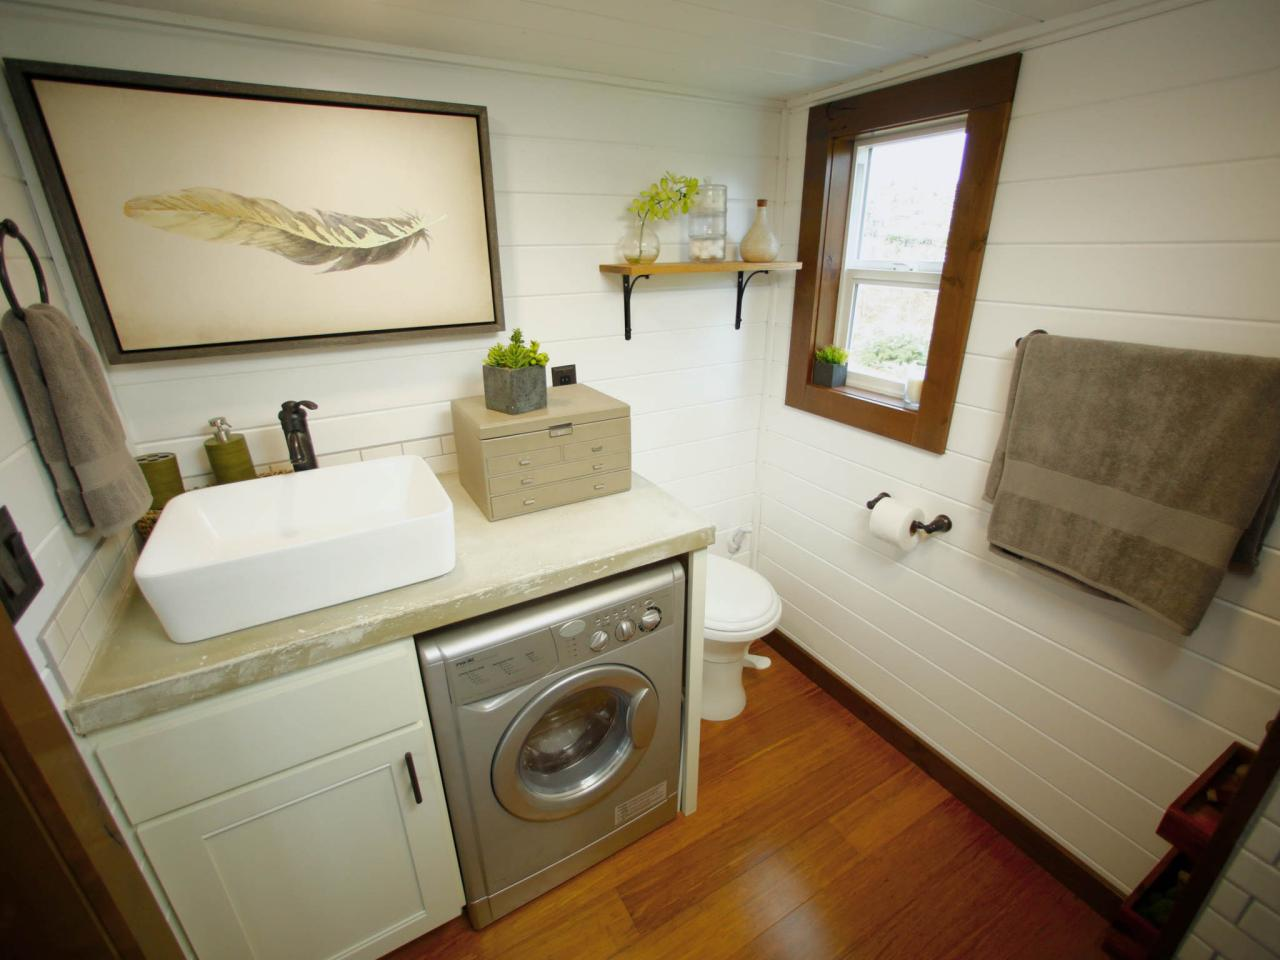 8 tiny house bathrooms packed with style hgtv 39 s for Tiny toilet design